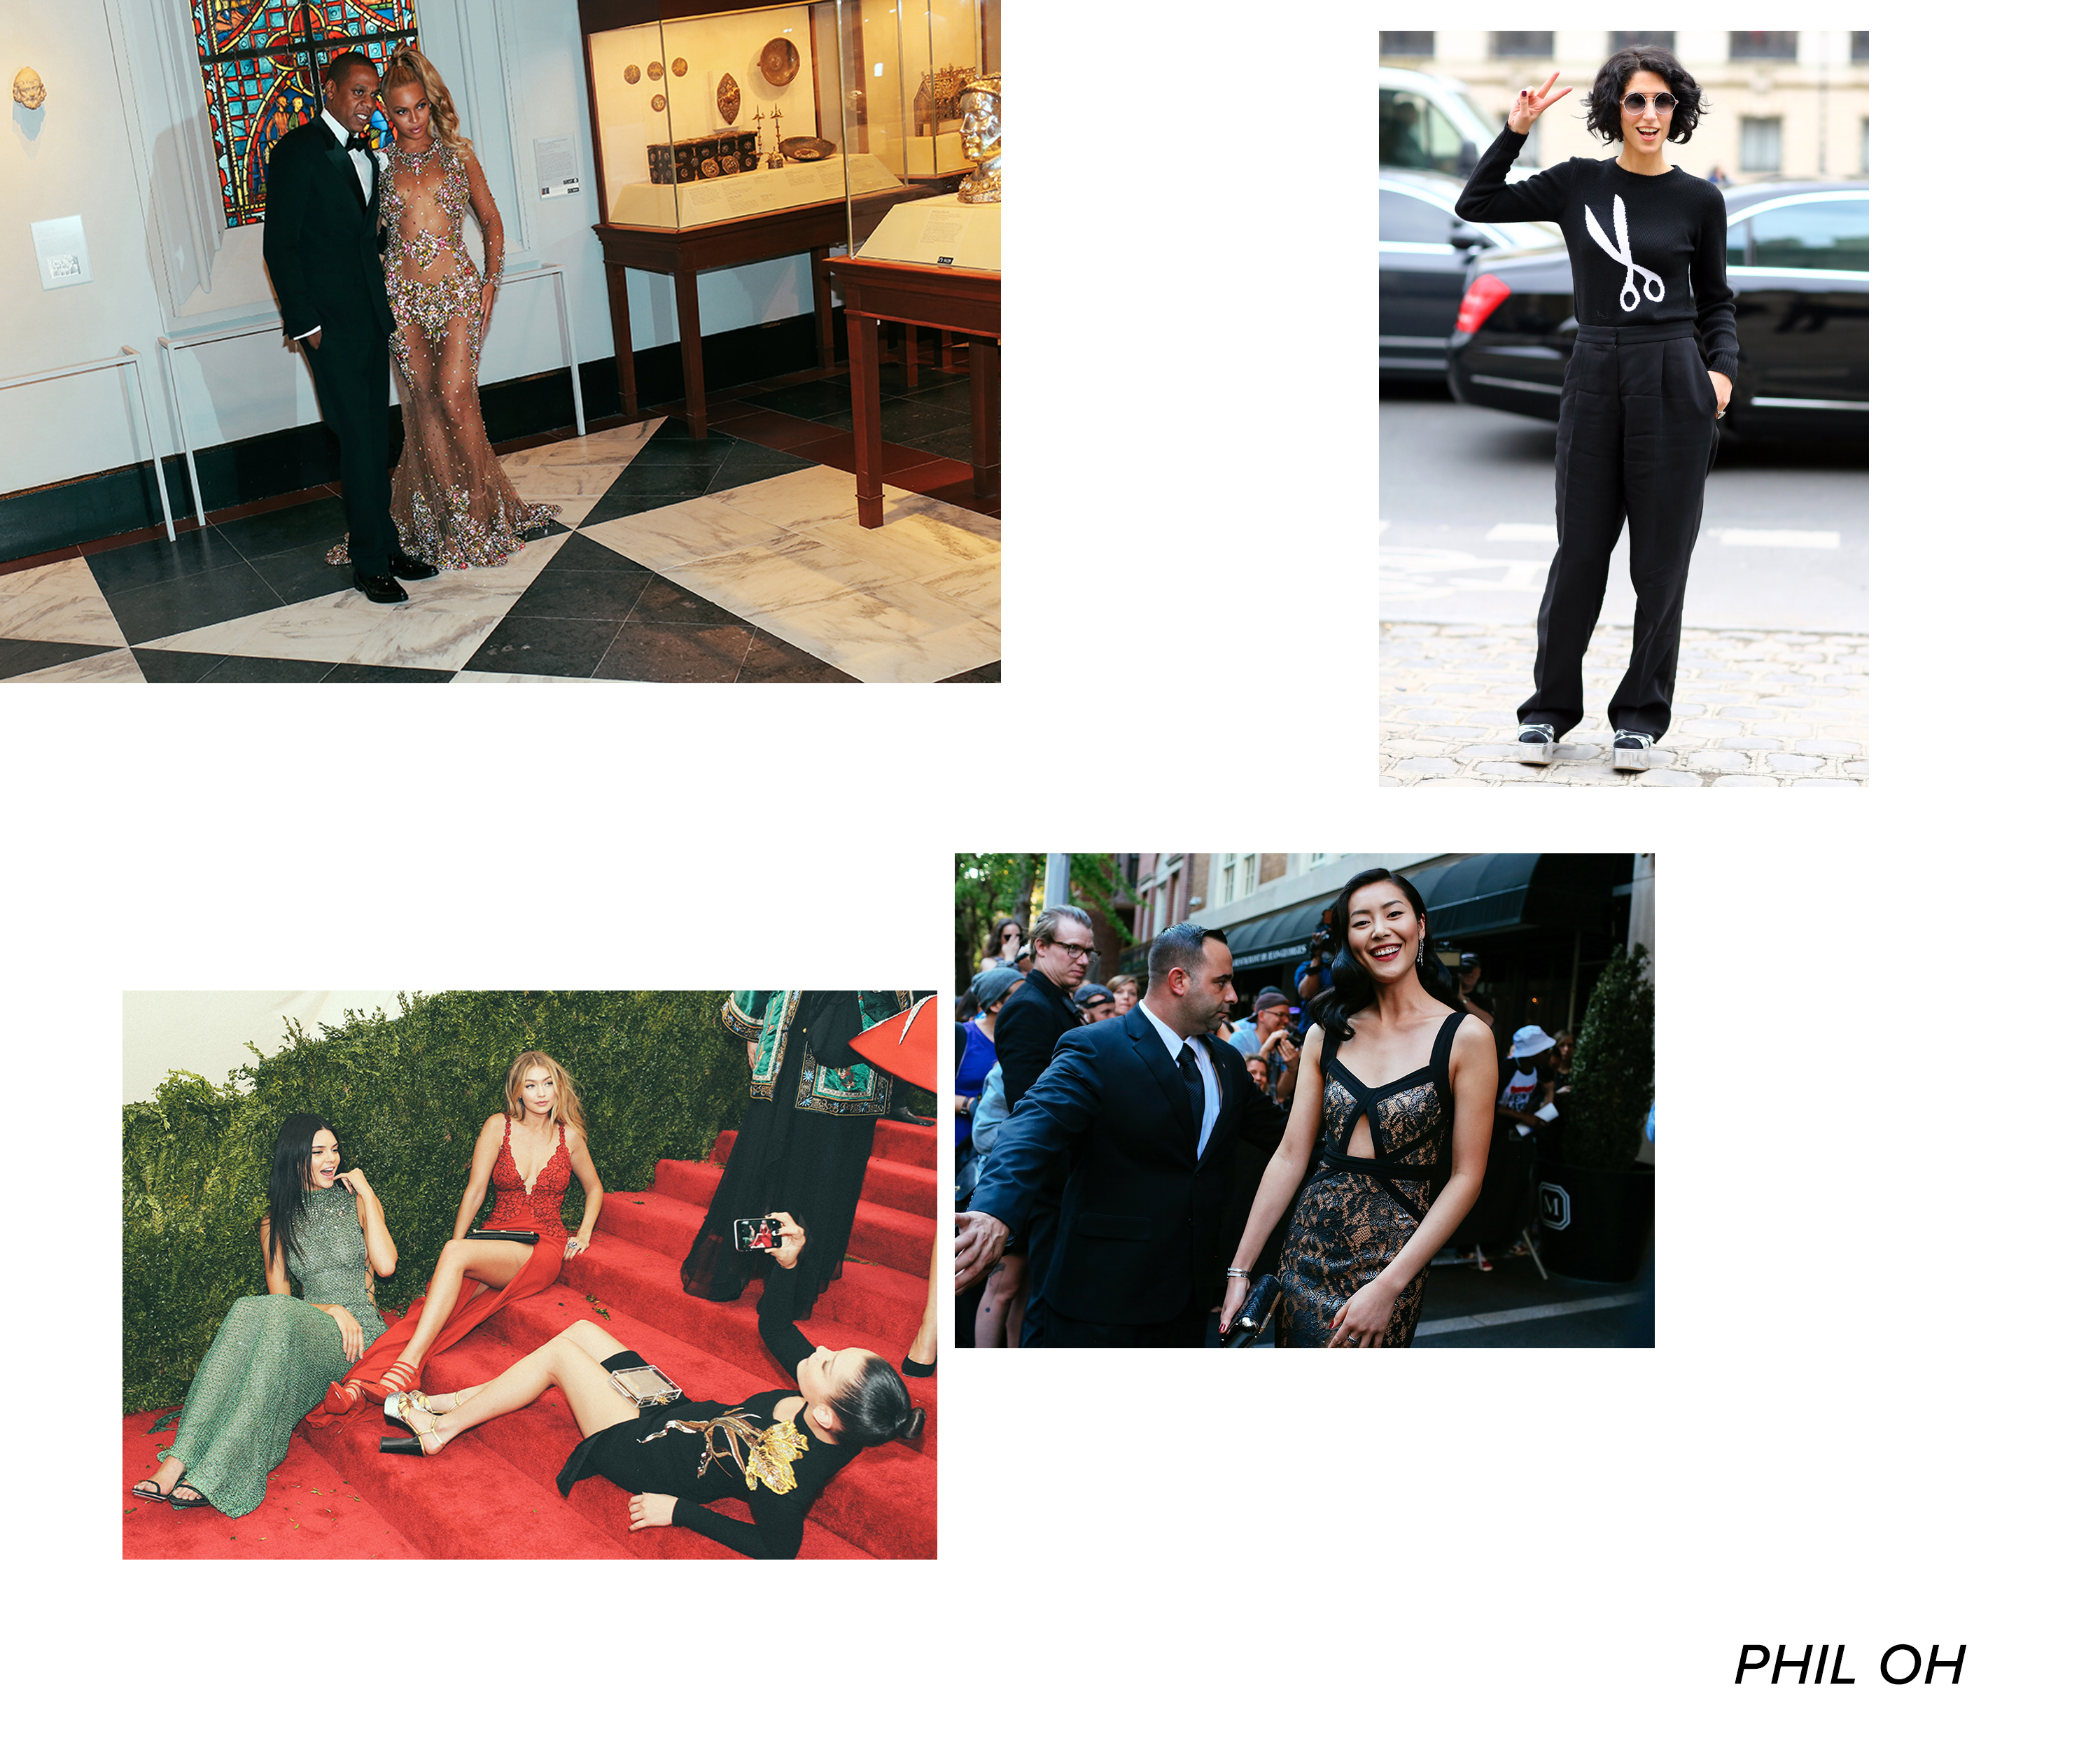 Phil Oh - Mr. Street Peeper - 19 Photographers Taking Photos of Your Favorite Models and Designers - FilterGrade